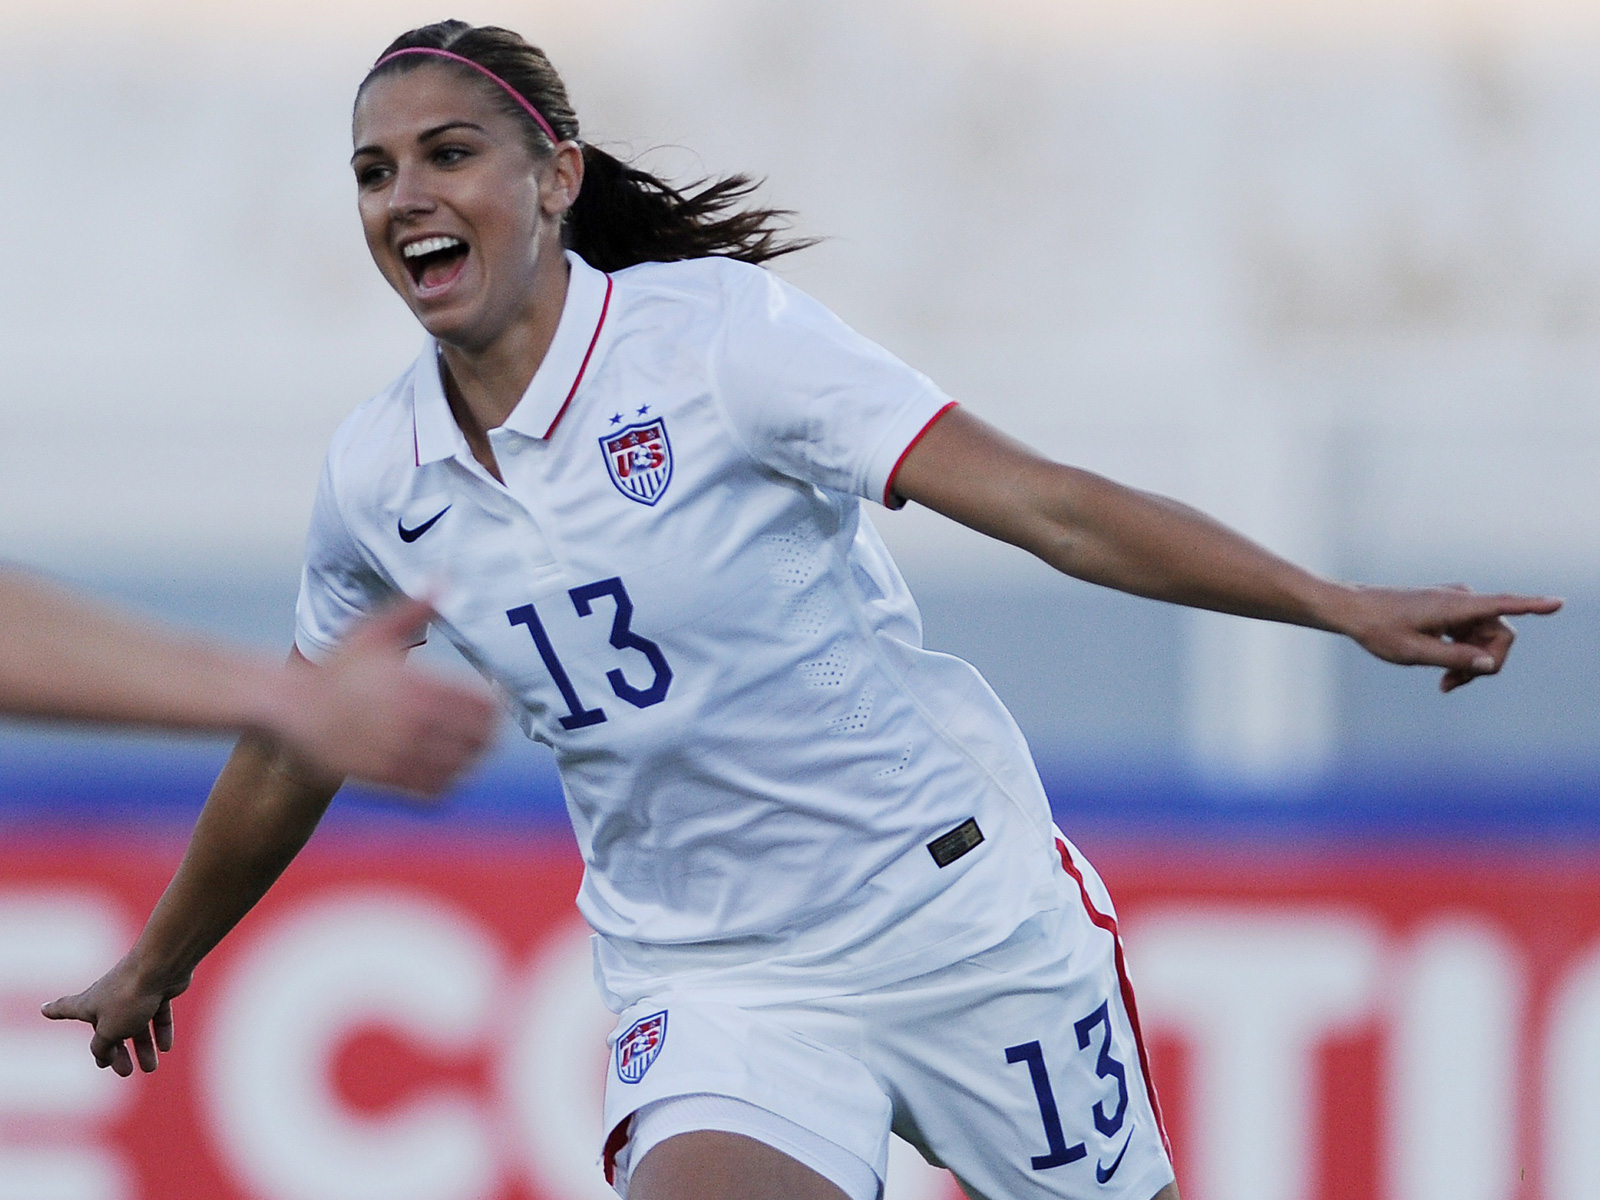 Alex Morgan celebrates her goal in the USWNT's 3-0 win over Switzerland in the Algarve Cup group stage.